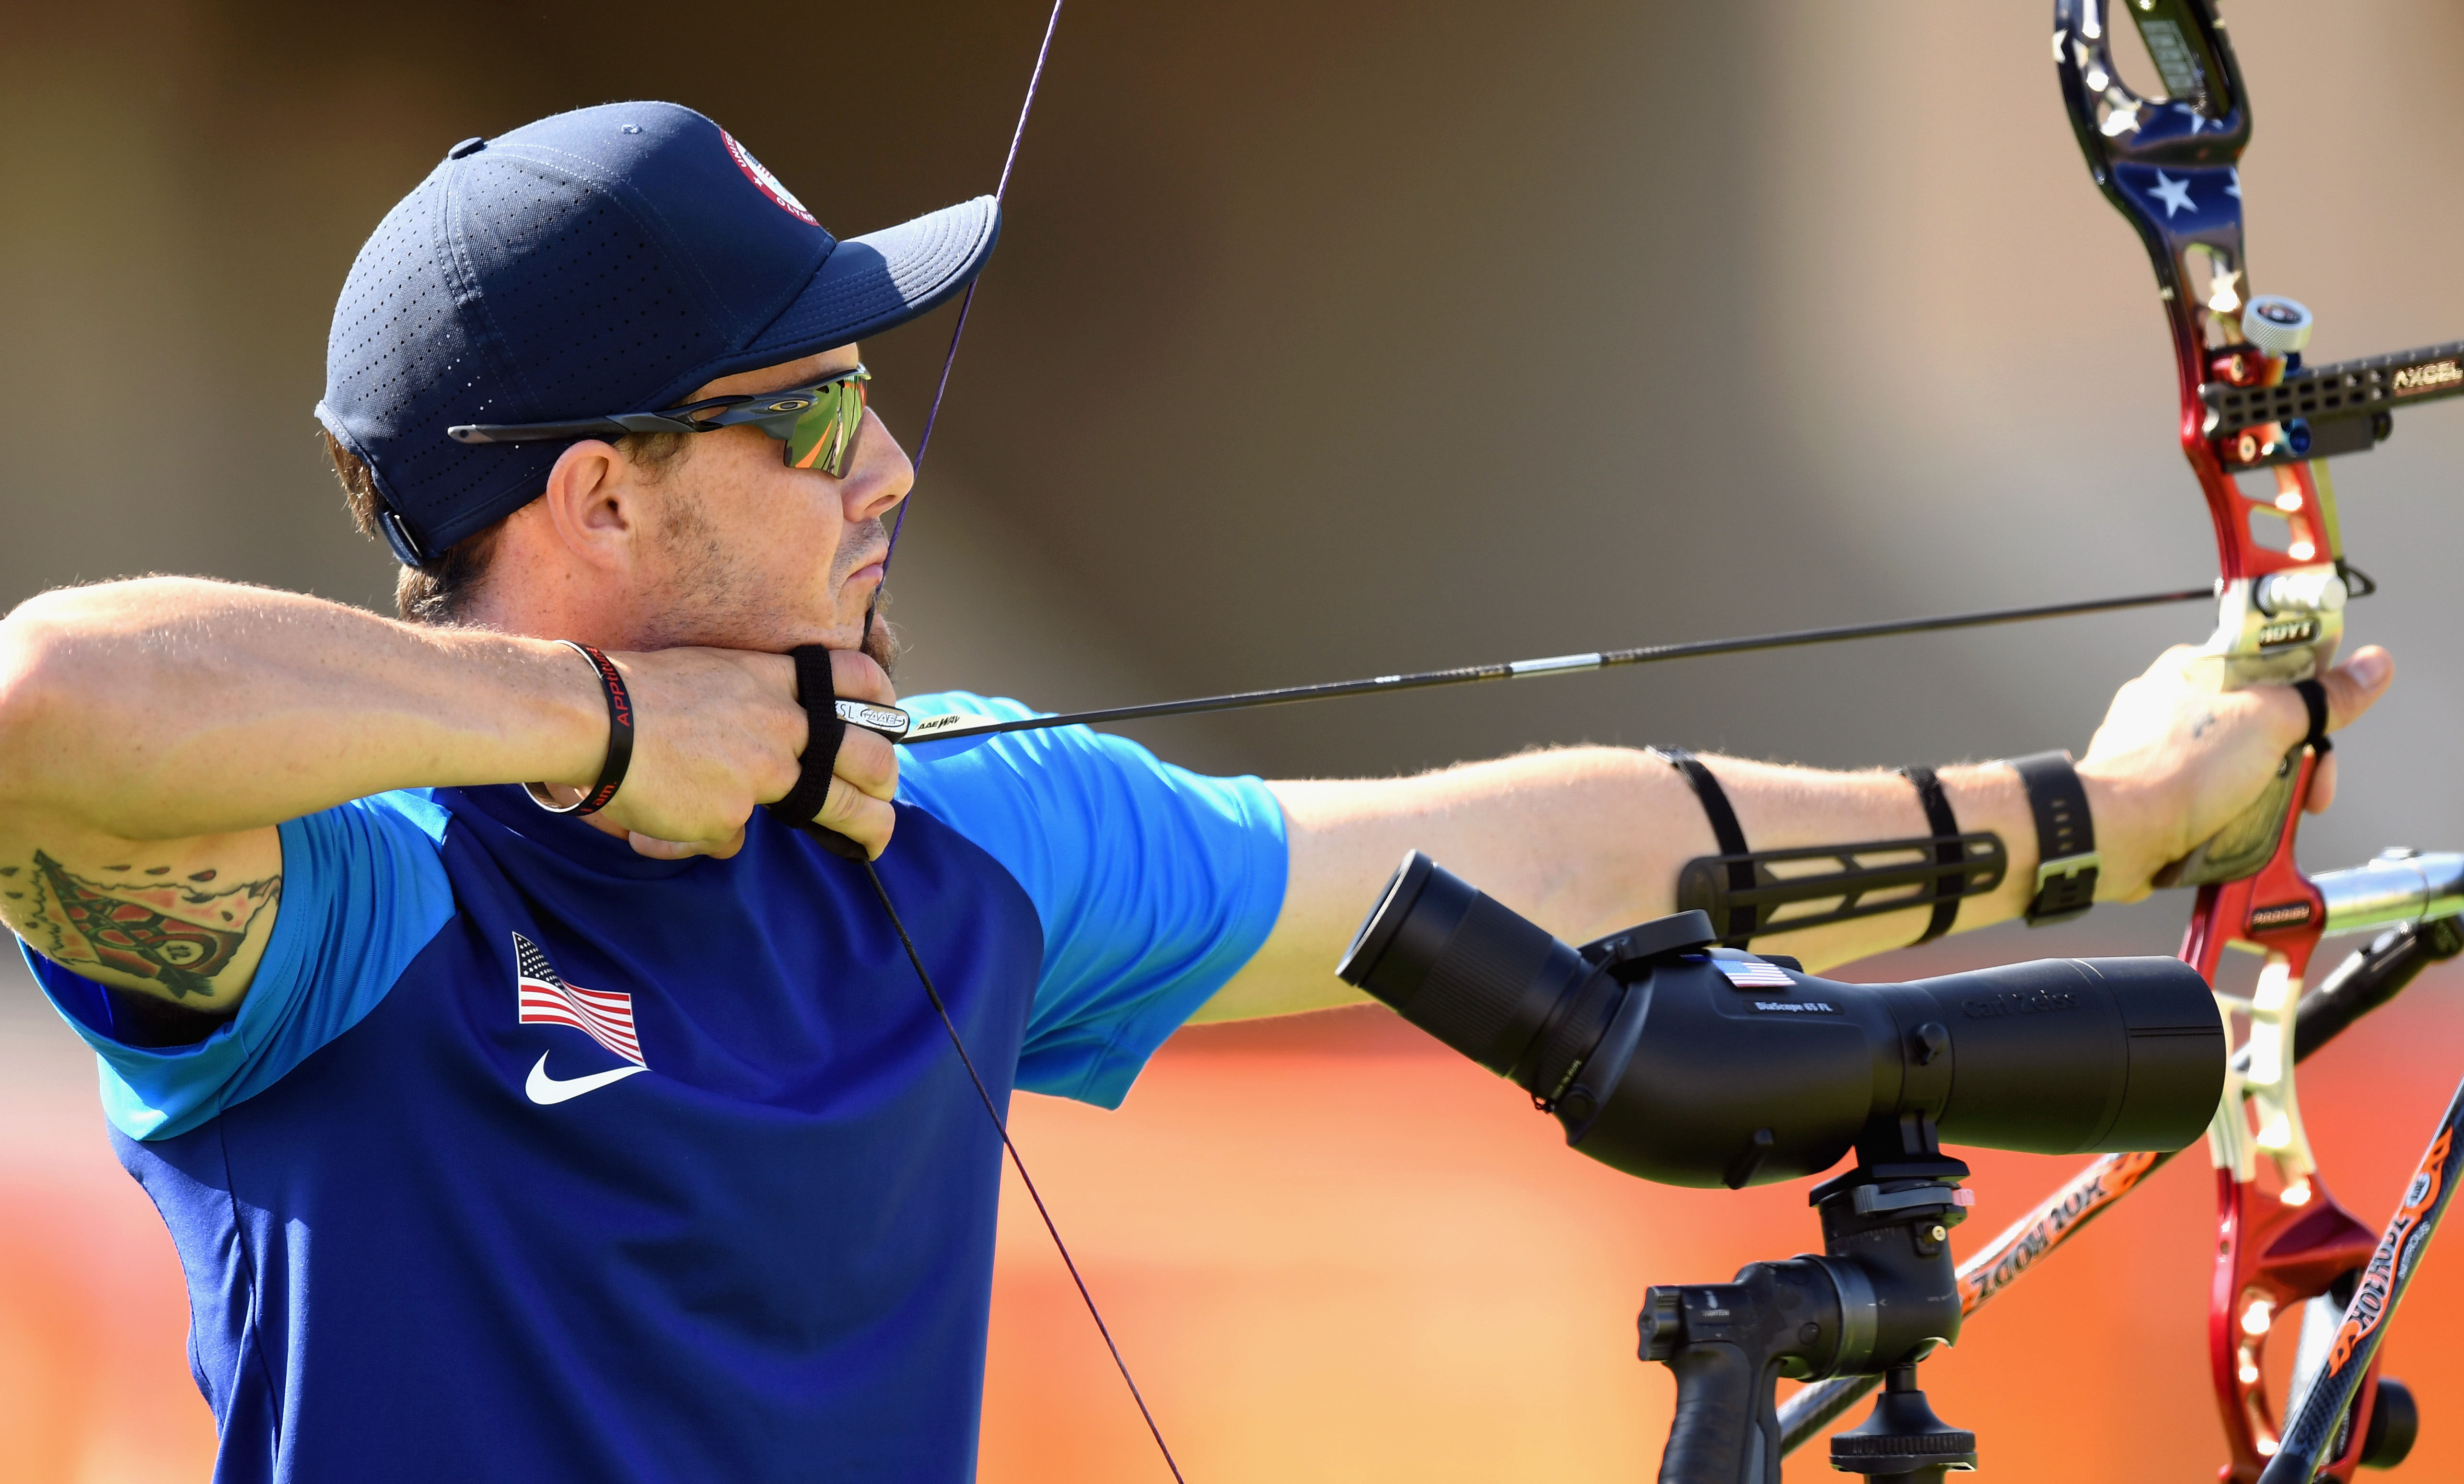 Elma native Jake Kaminski of the United States competes during the Men's Individual Ranking Round of the Rio 2016 Olympic Games at the Sambodromo Olympic Archery venue on August 5, 2016 in Rio de Janeiro, Brazil.  (Getty Images)